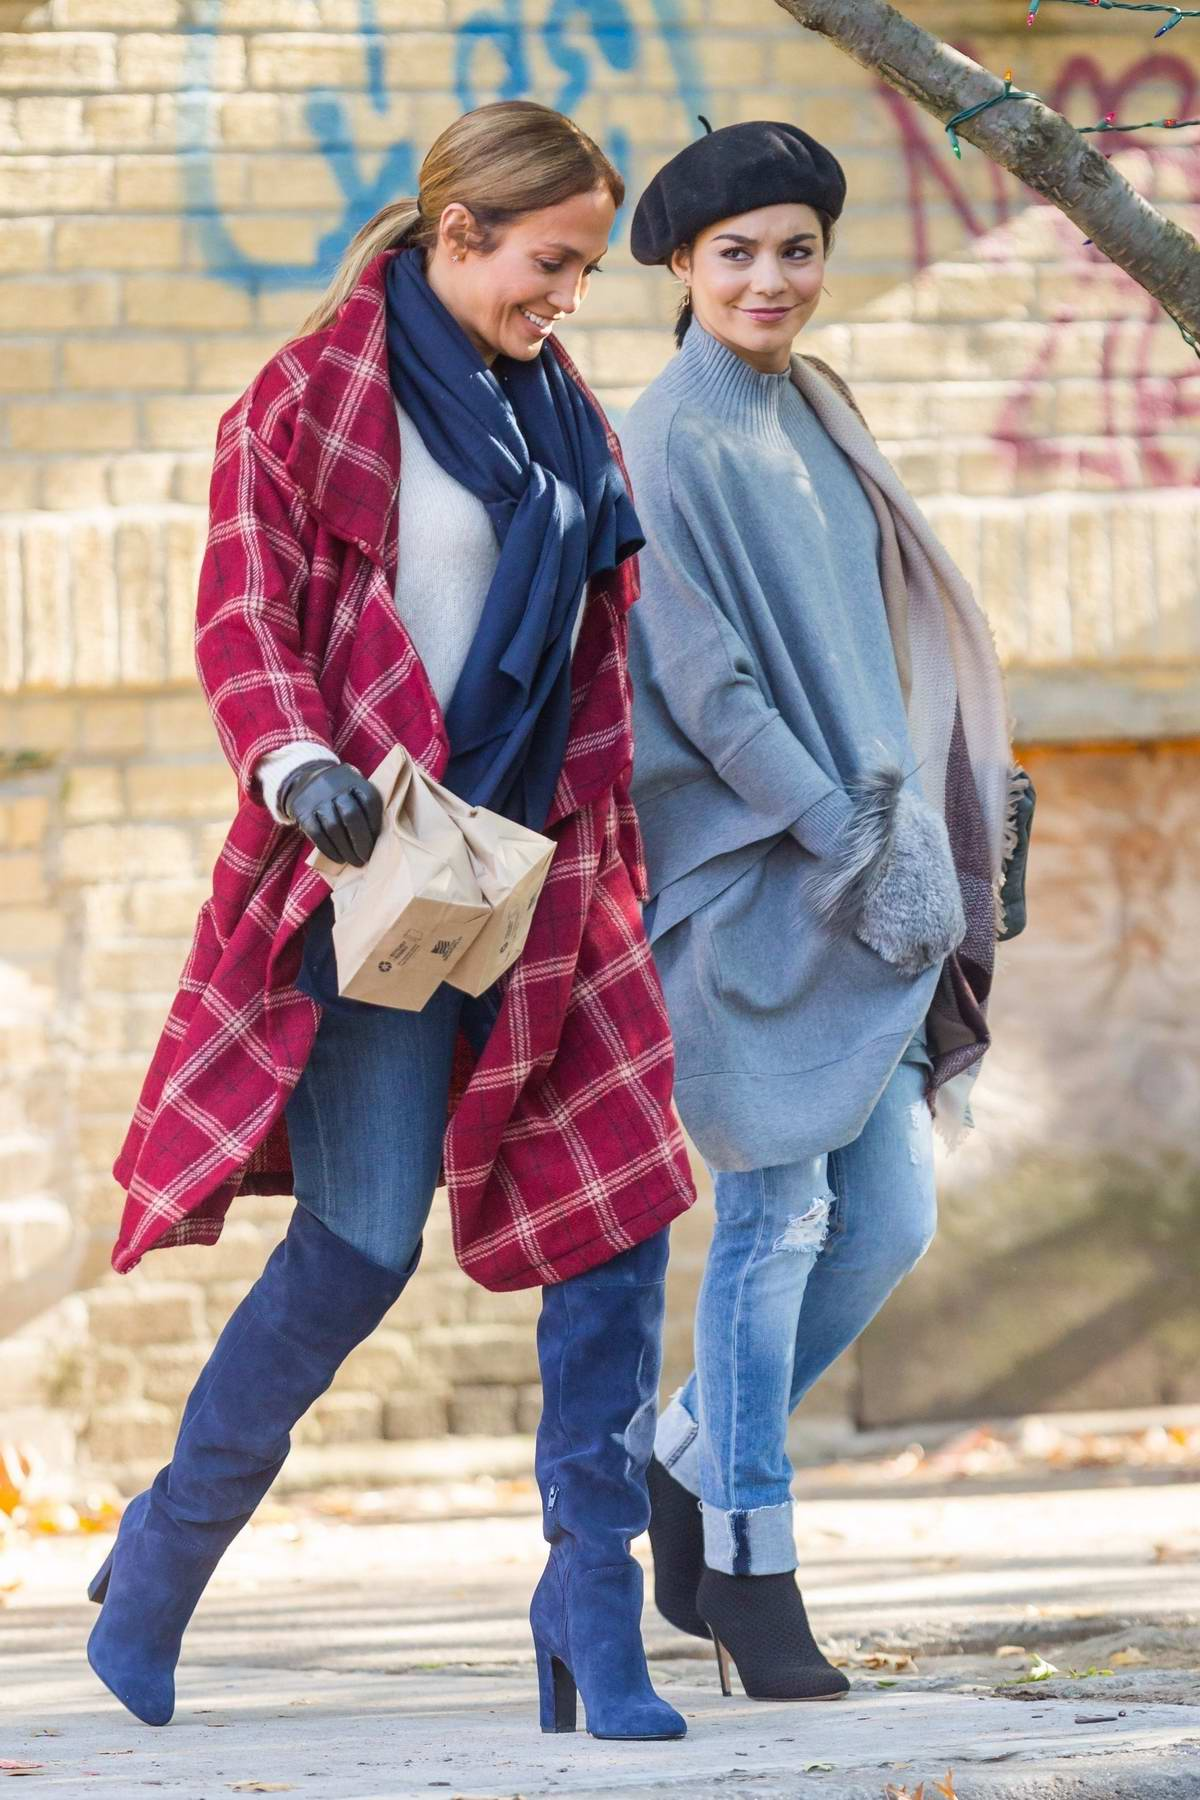 Jennifer Lopez and Vanessa Hudgens filming a scene on the set of 'Second Act' in New York City